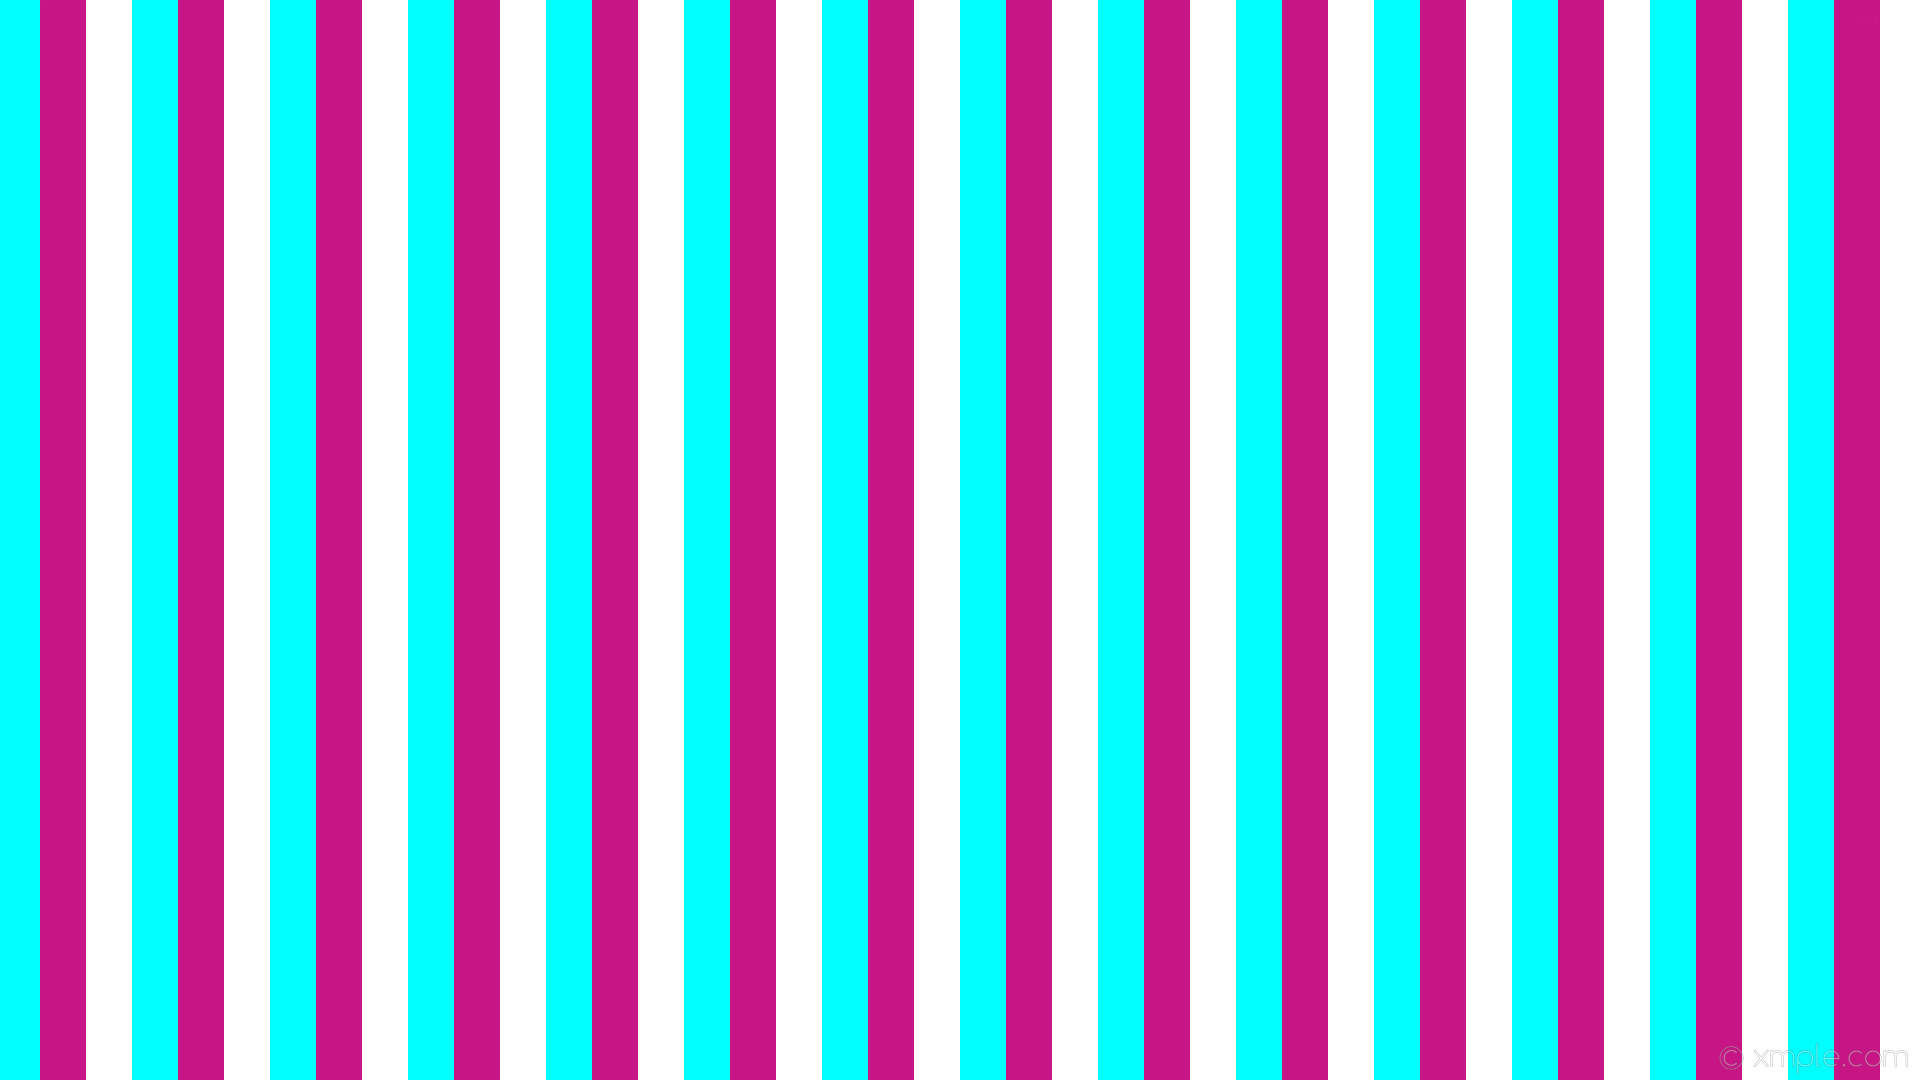 Pink And Blue Striped Wallpaper 2989 Wallpaper: Blue And Pink Wallpaper (81+ Images